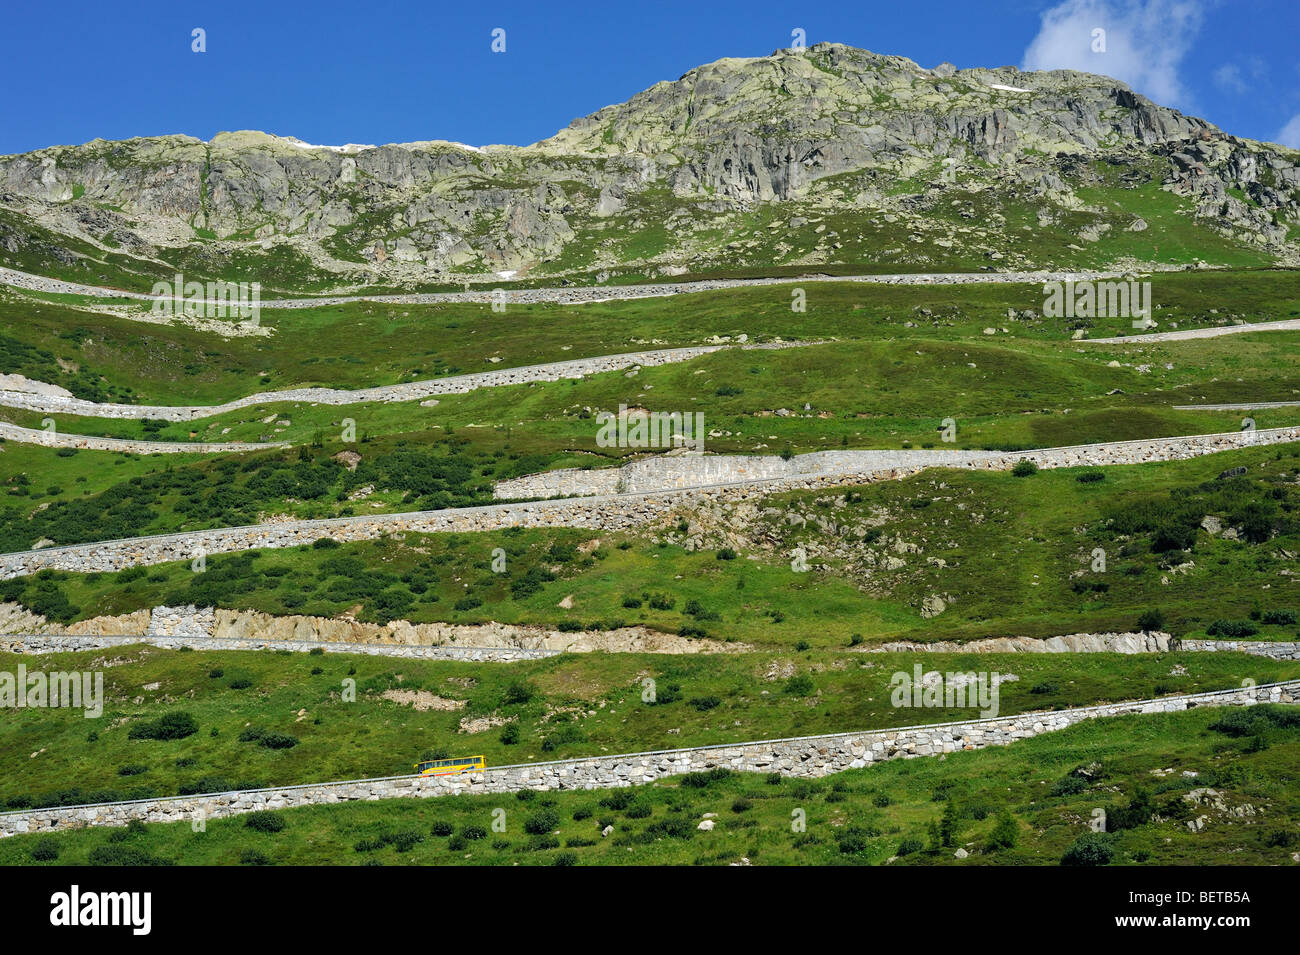 Road with hairpin curves winding over the Grimsel Pass in the Swiss Alps, Switzerland - Stock Image